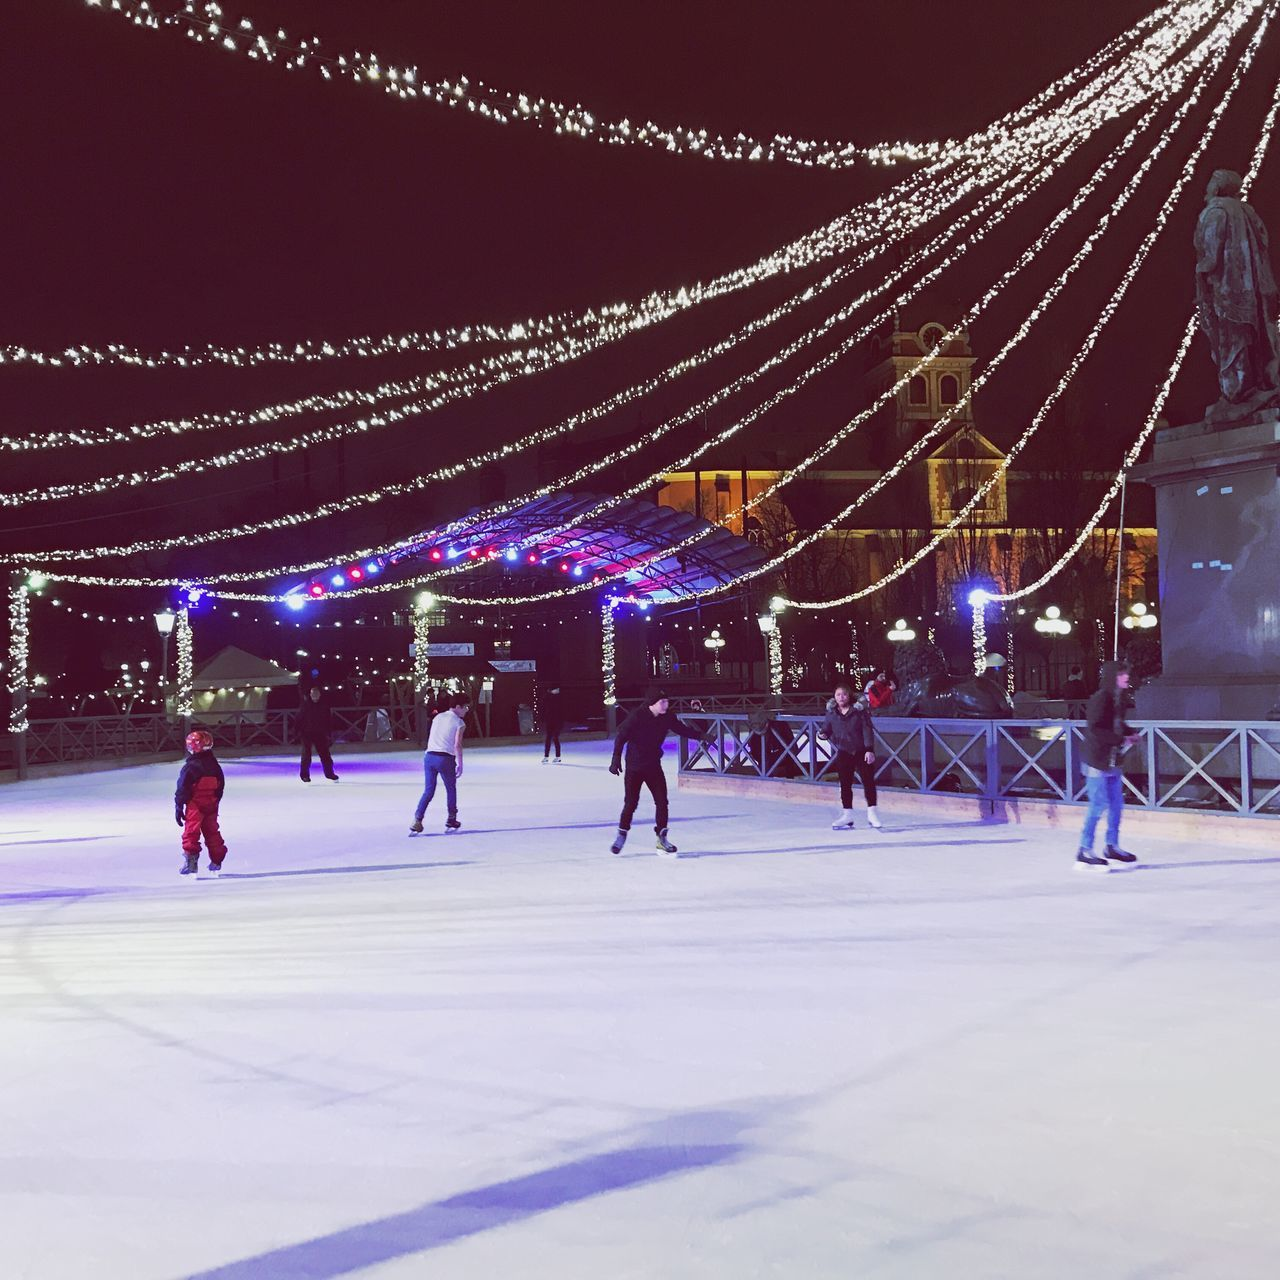 Ice-skating Night Lights Winter Cold Temperature Illuminated Snow Real People Ice Rink Ice-skating Leisure Activity Ice Skate Outdoors Men Large Group Of People Night Sky